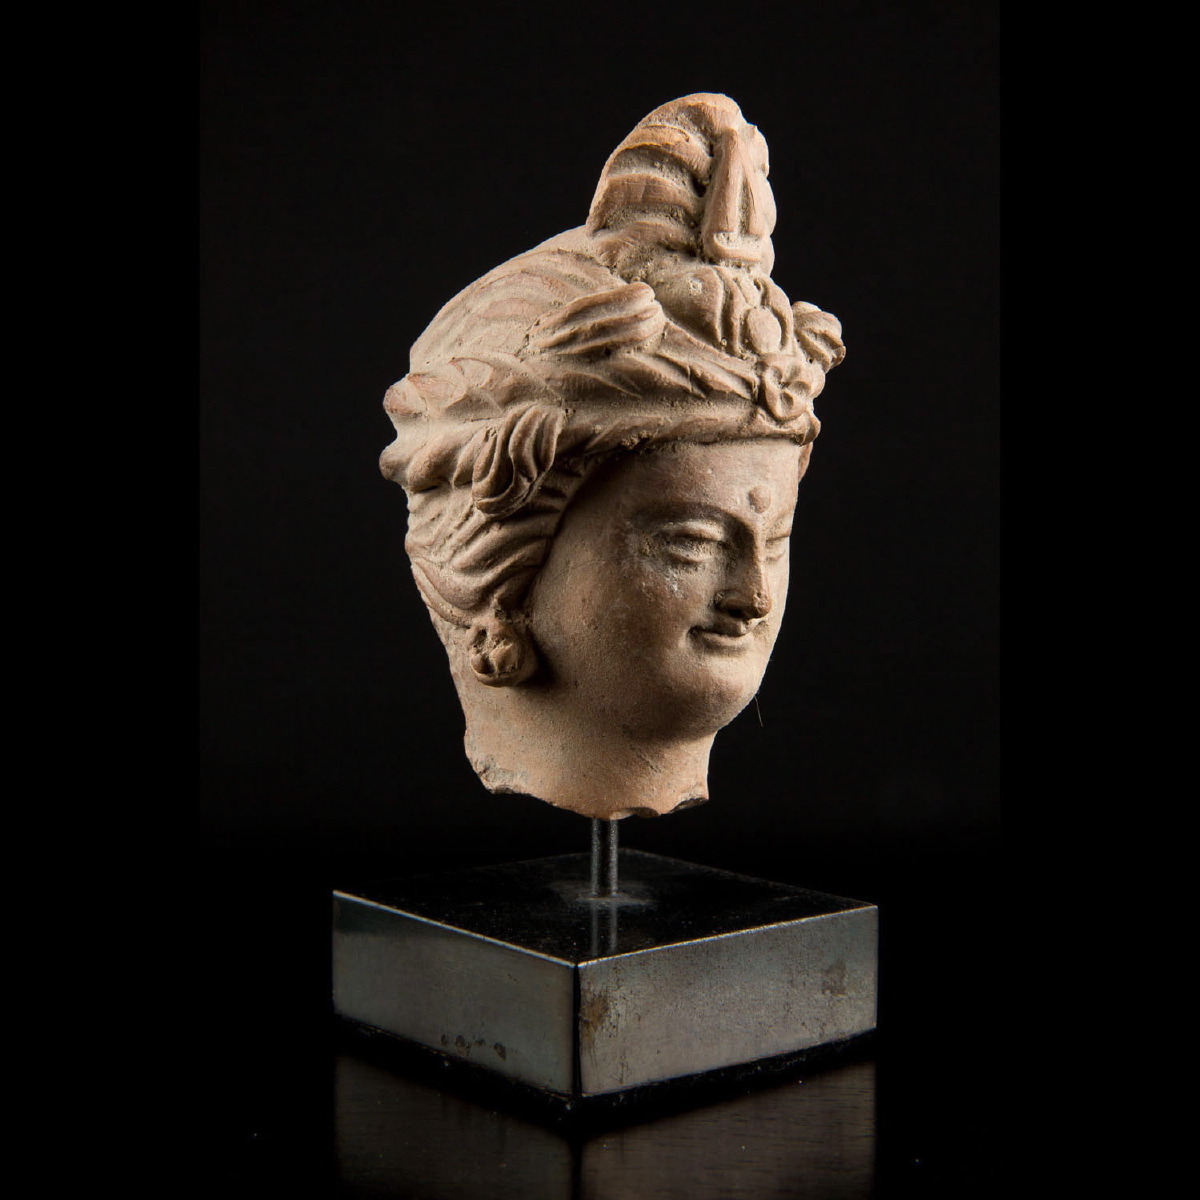 Photo of bodhisattva-head-with-turban-gandhara-afganistan-galerie-golconda